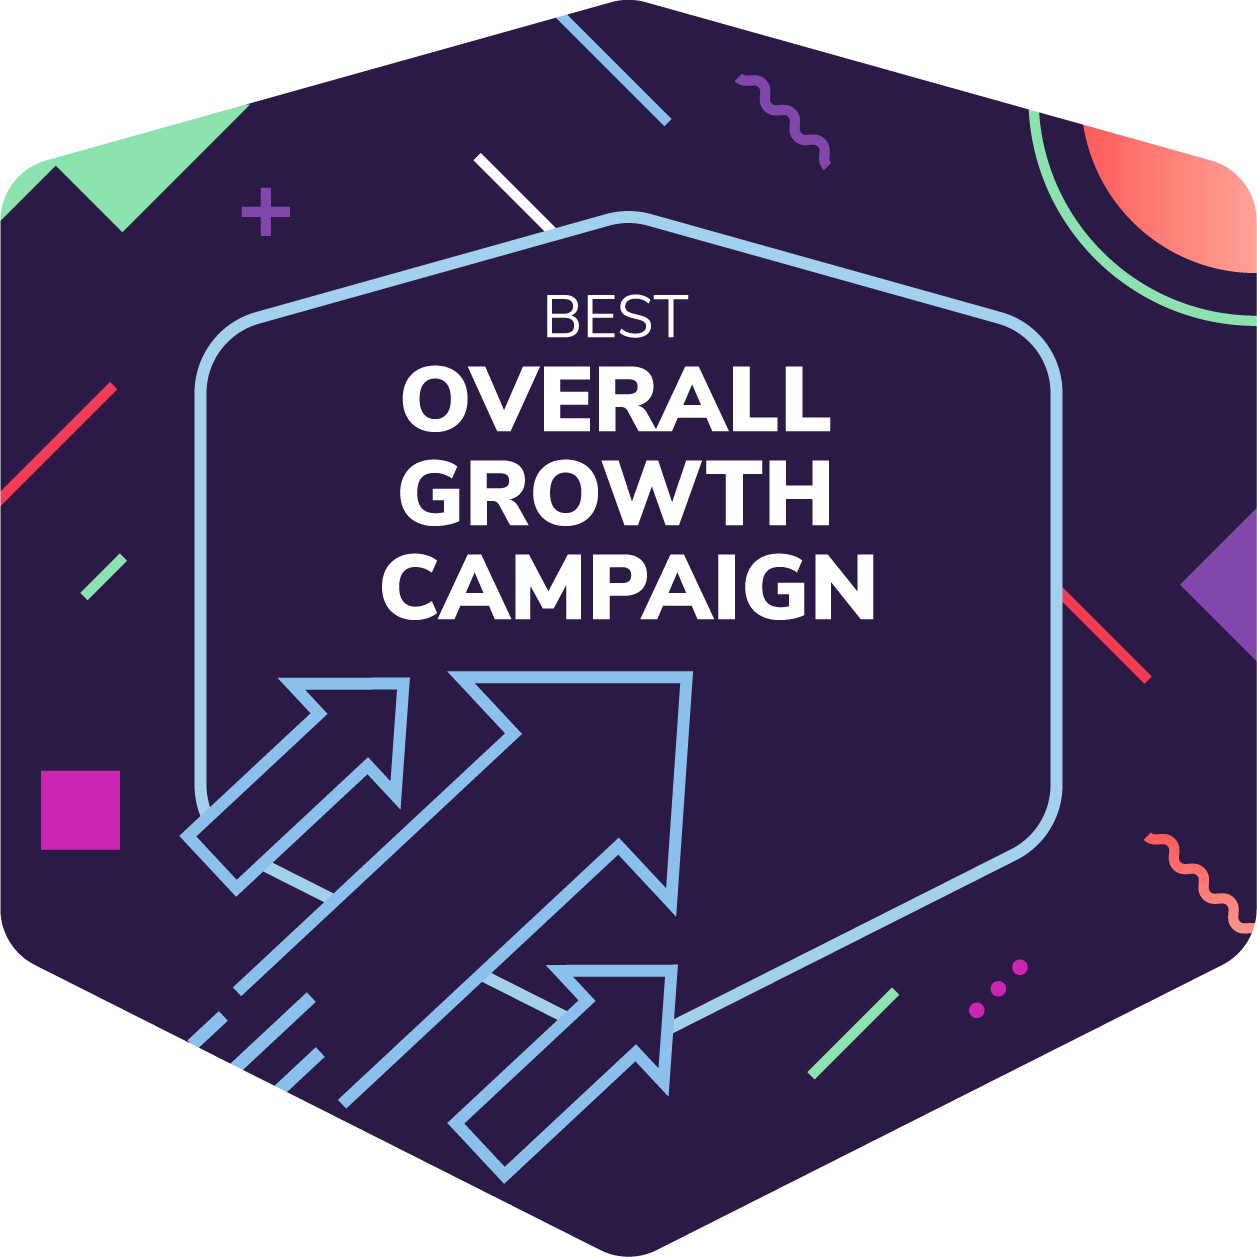 Best Overall Growth Campaign